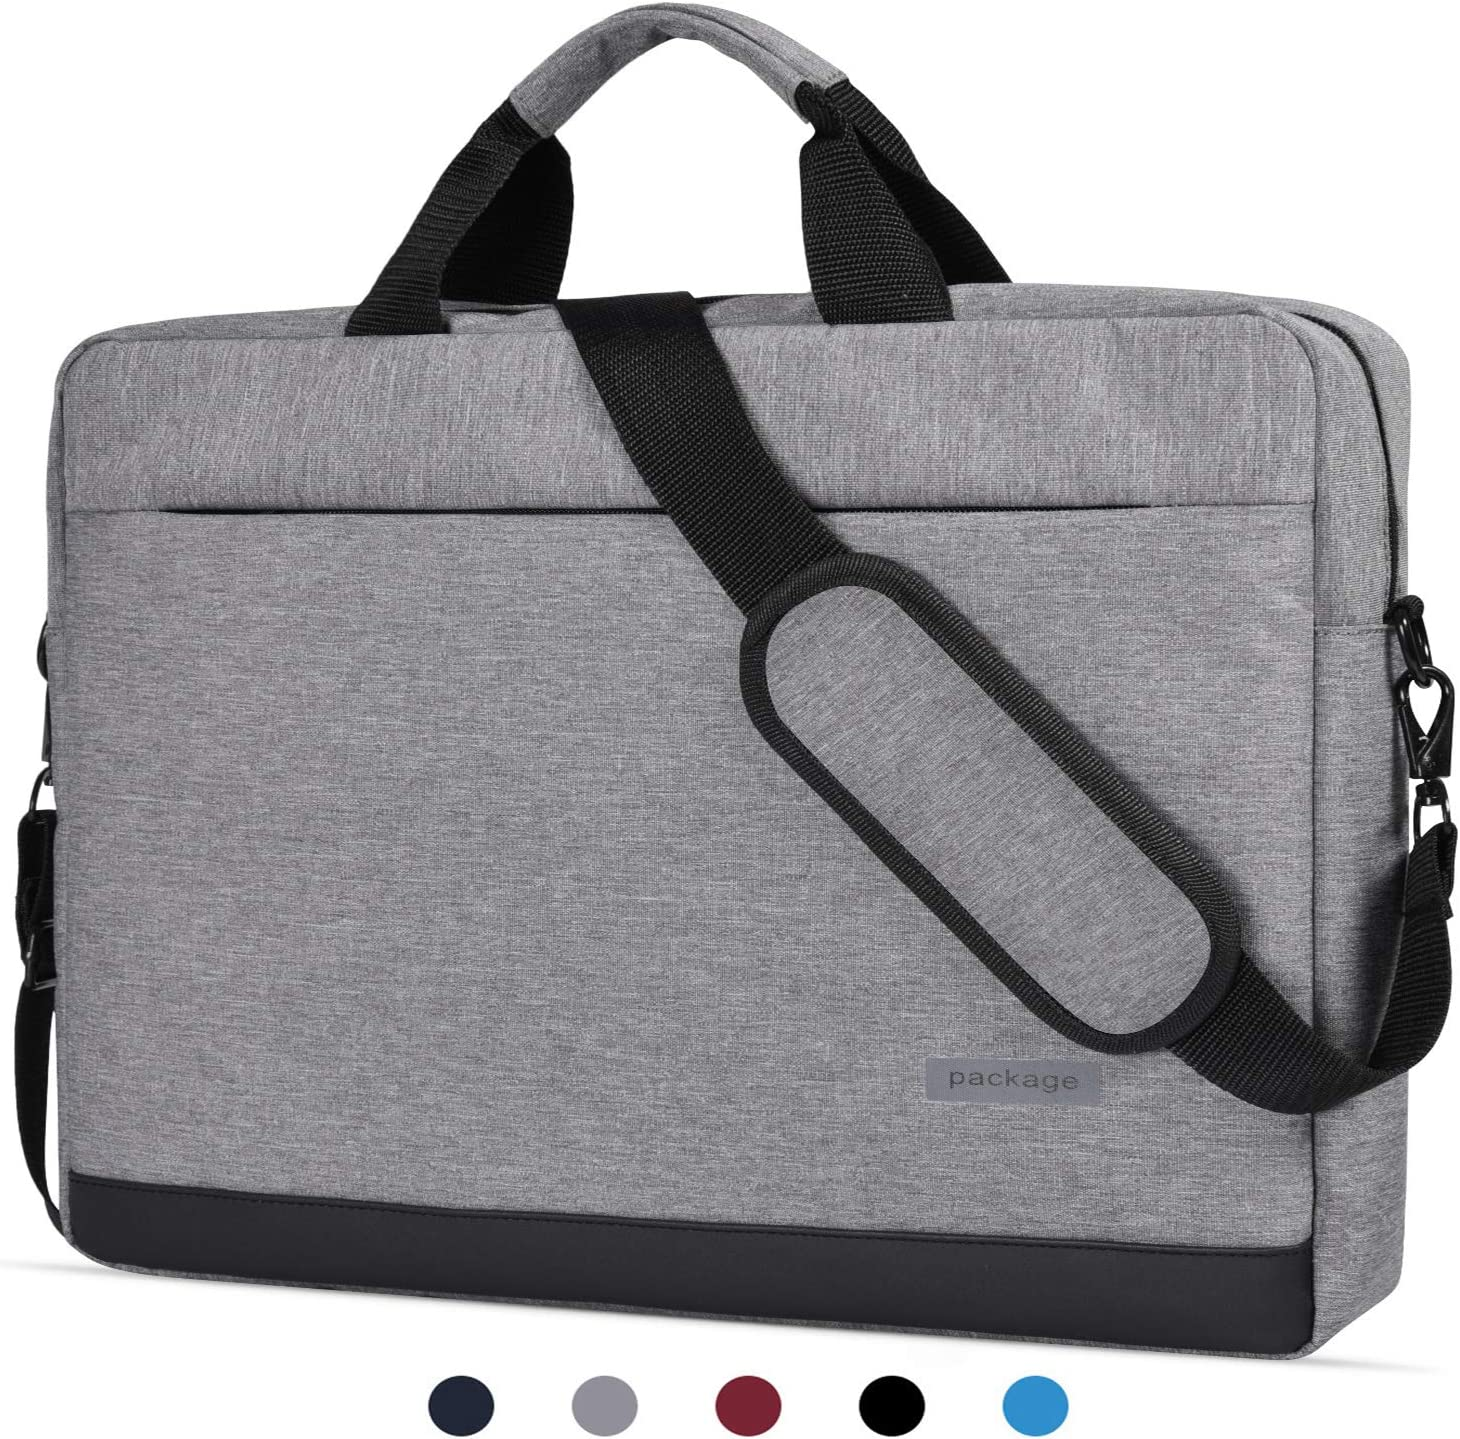 "15.6 Inch Laptop Shoulder Bag Messenger Bag Waterproof Notebook Case Compatible with Acer Chromebook 15/Acer Predator Helios 300, Lenovo Yoga 730 15.6"", MSI ASUS LG Acer HP 15.6 inch Laptop Bag,Grey-2"